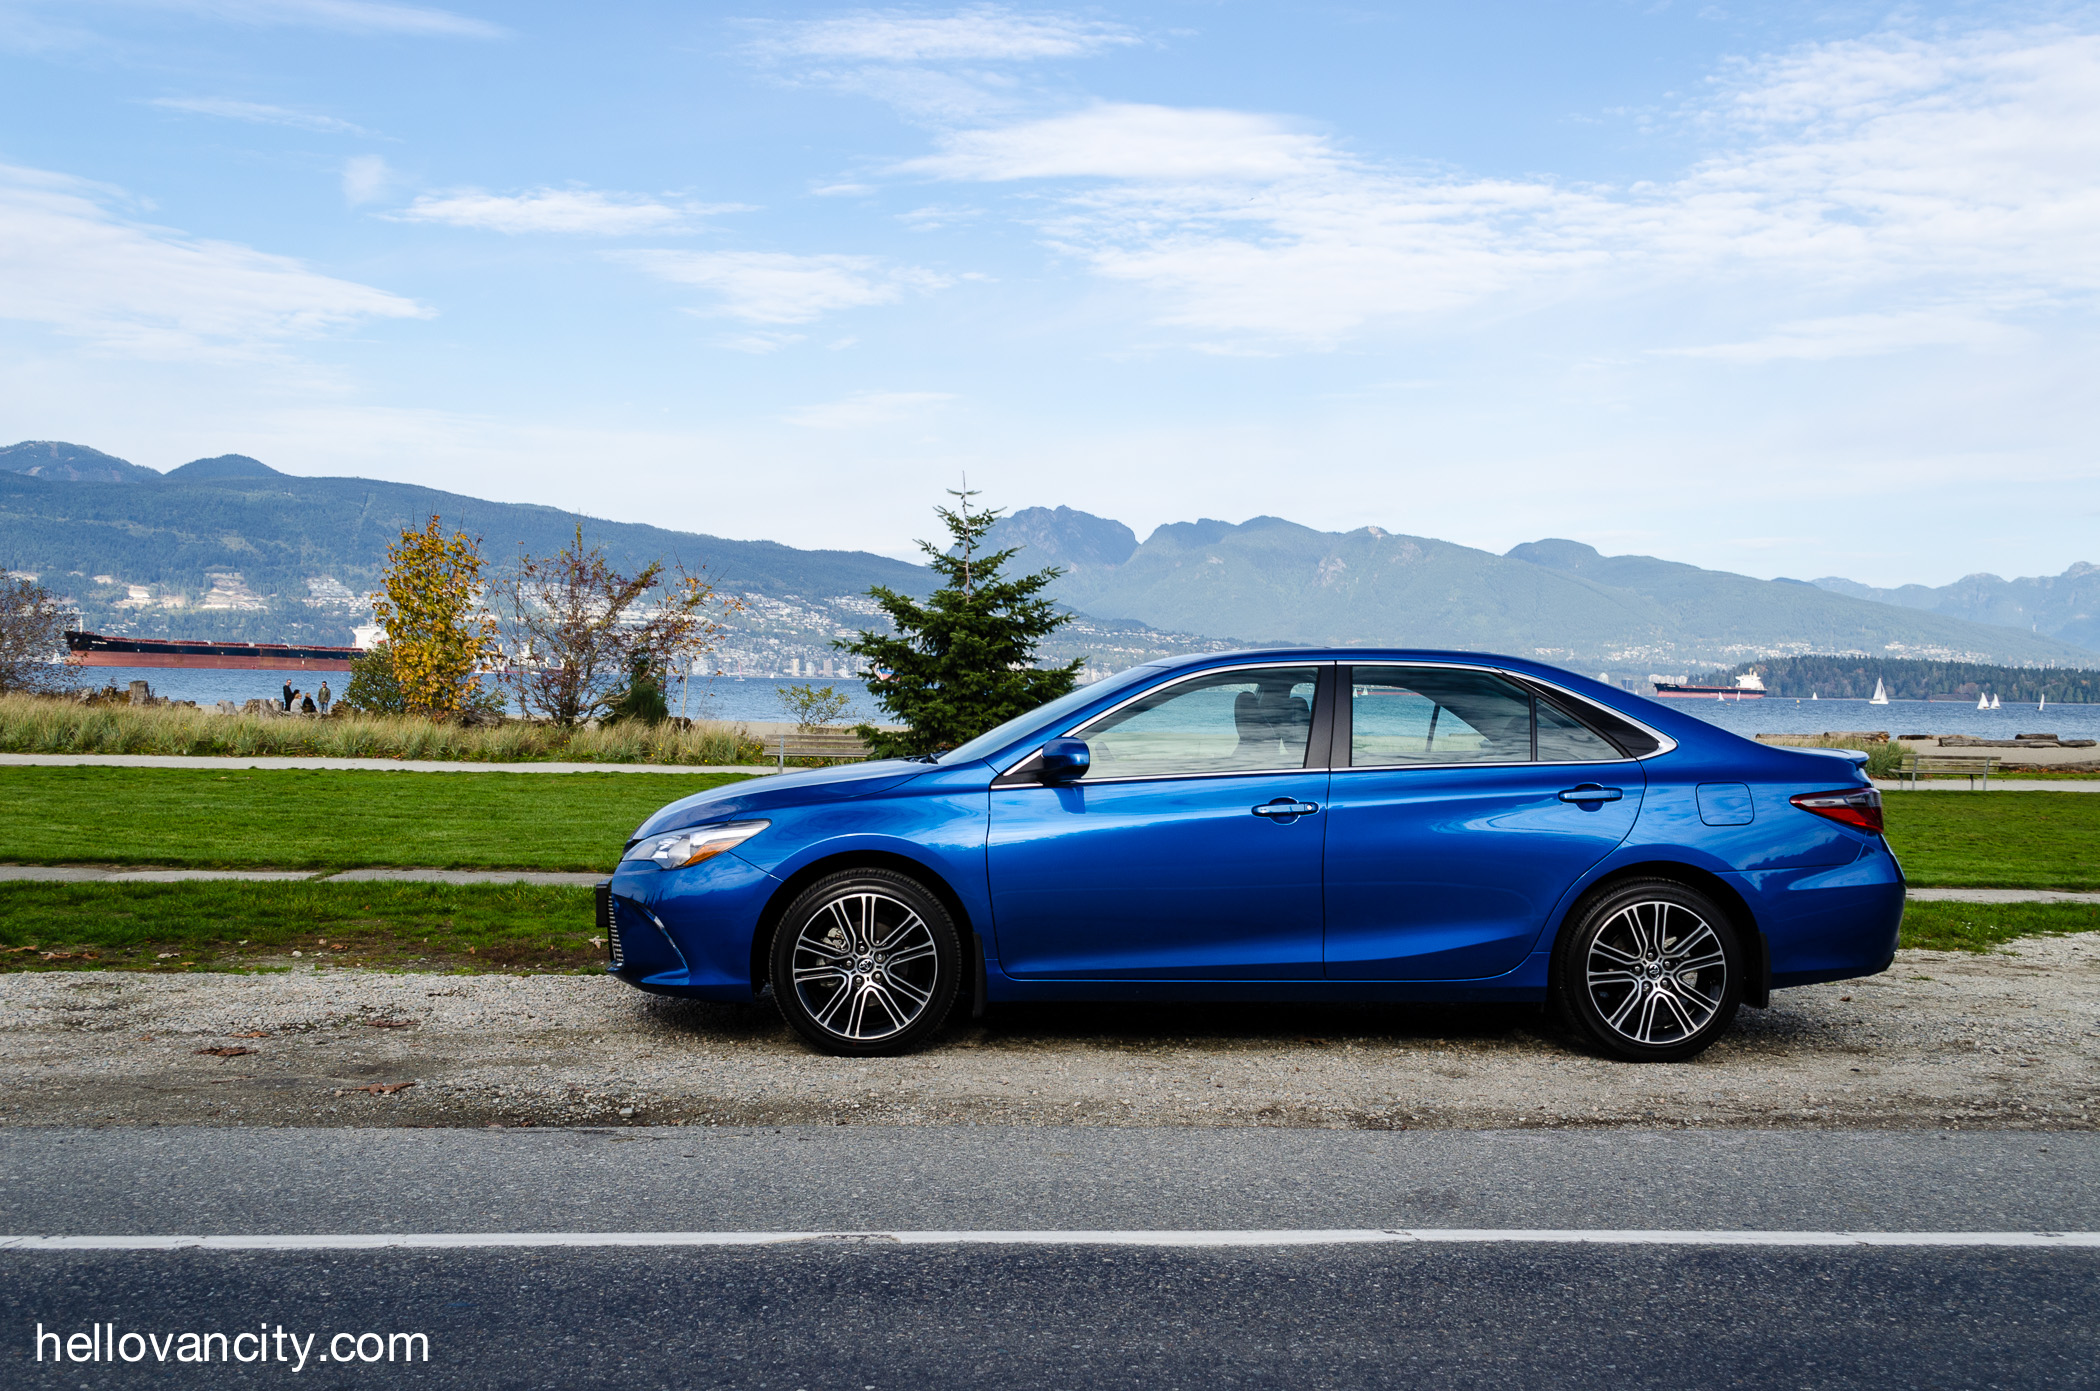 all new camry 2016 agya 1.2 g trd review toyota xse hello vancity